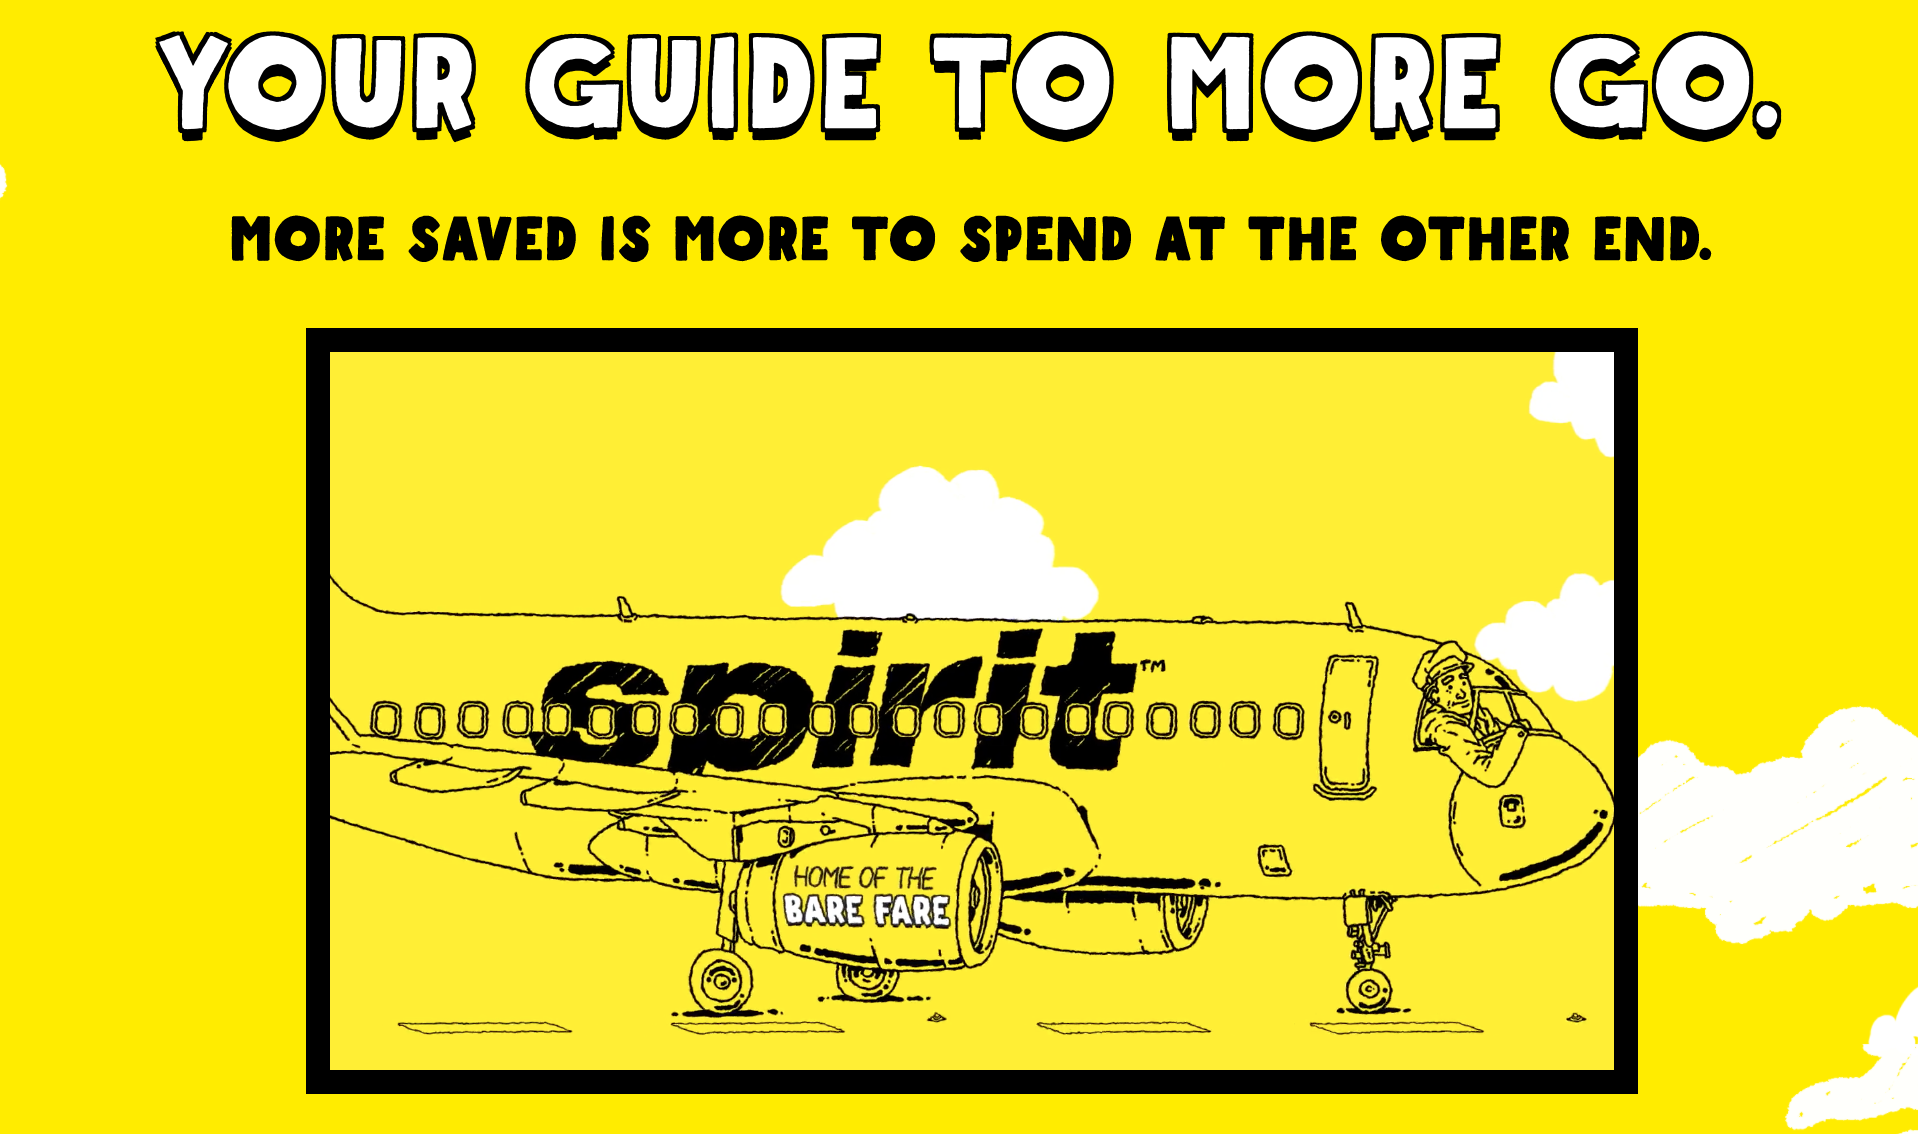 Spirit Airlines - Your Guide To More Go